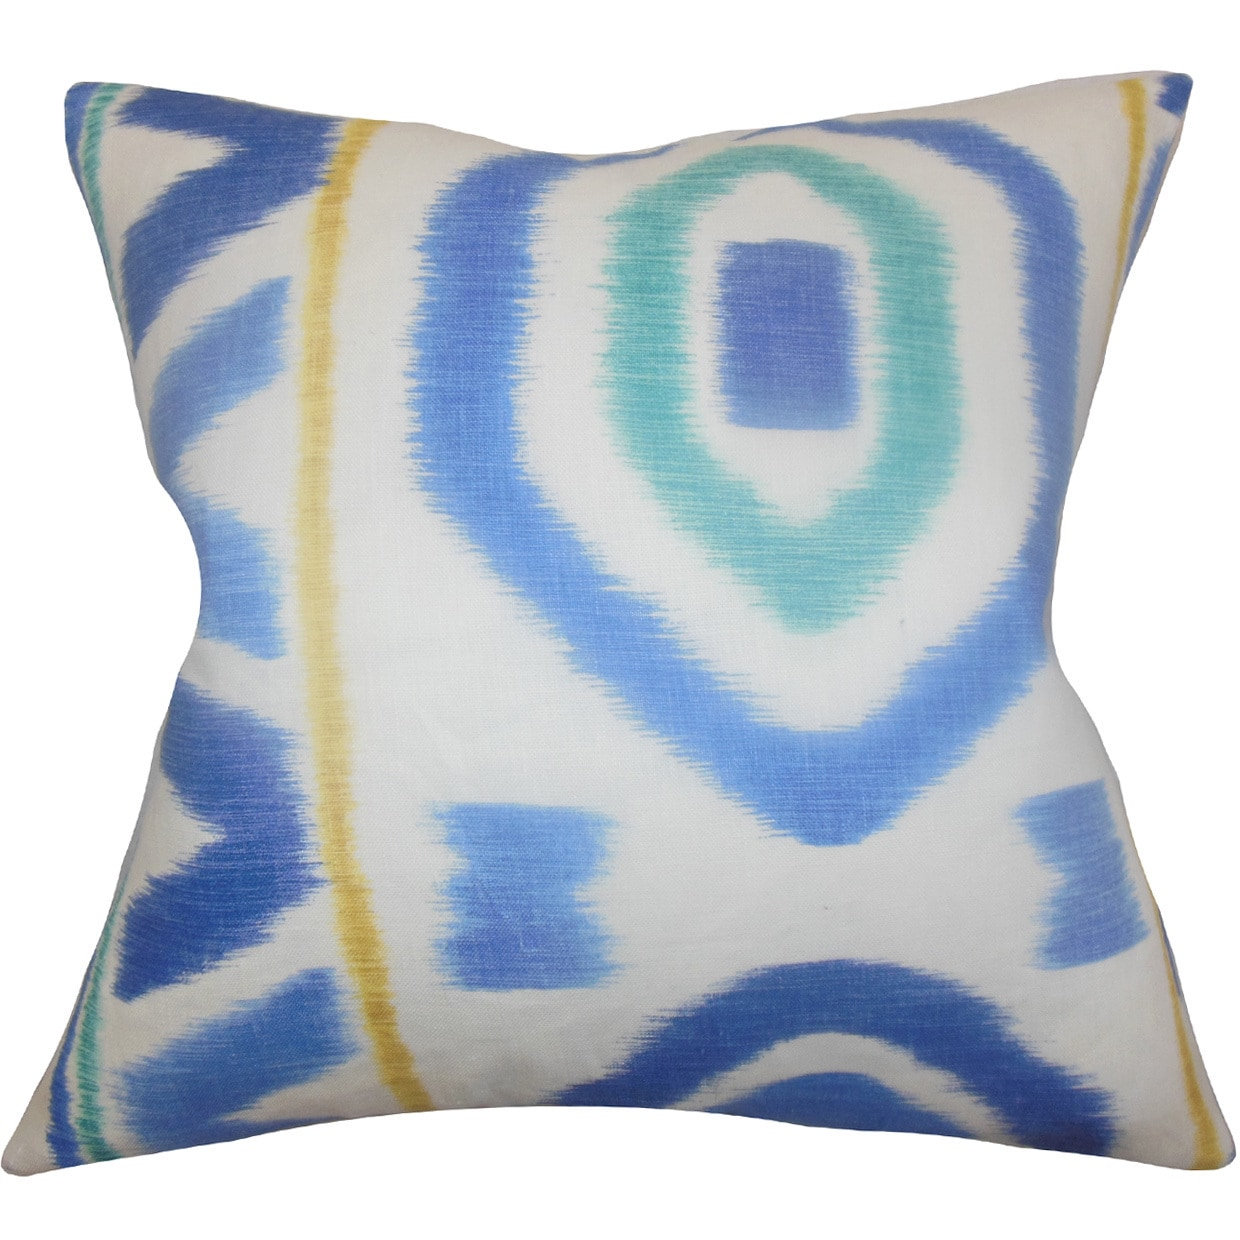 The Pillow Collection Rivka Geometric 22-inch Down Feather Throw Pillow Blue